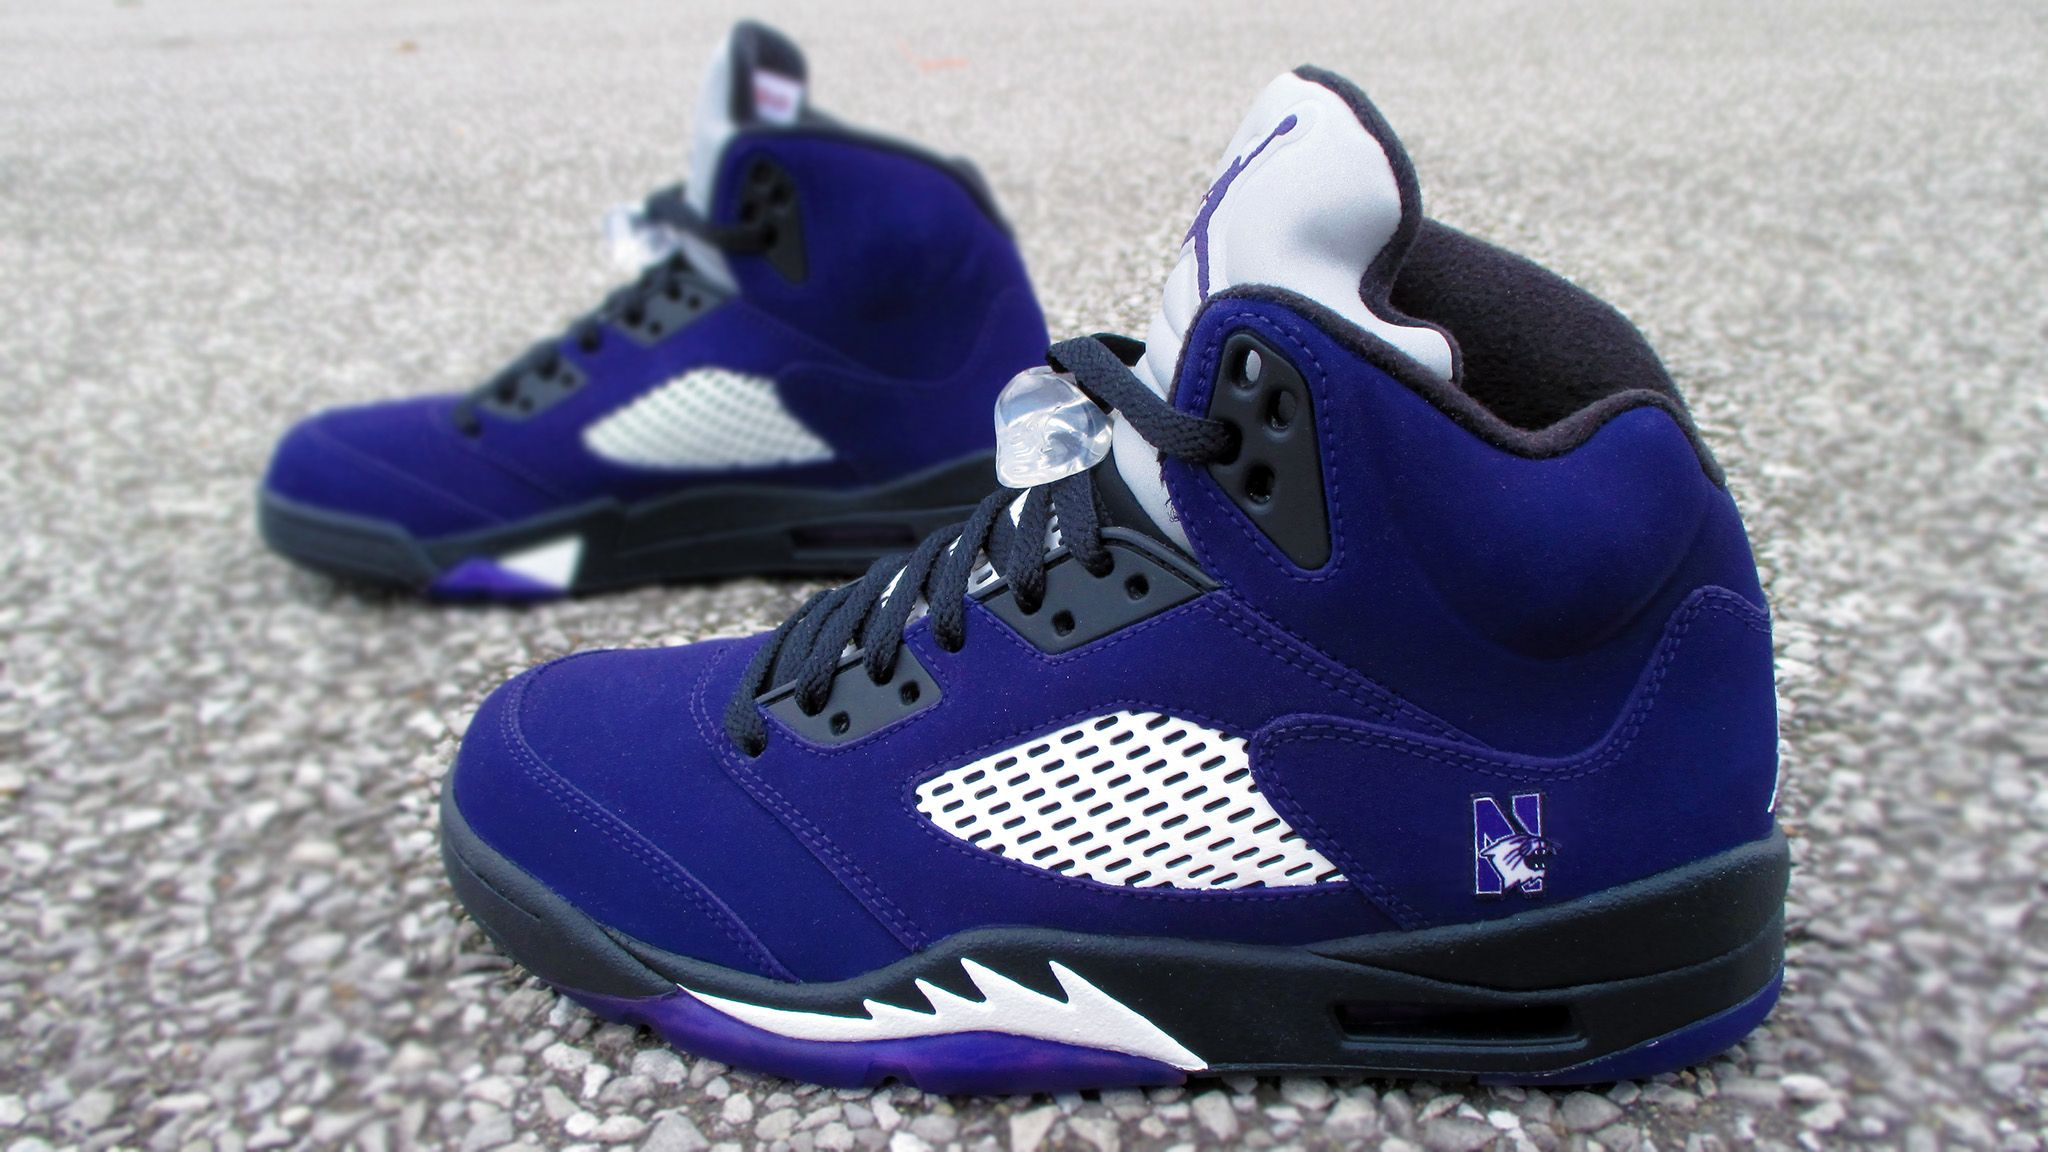 21191e469df Nike Air Jordan 5's Custom Black and Purple (Grapes) Northwestern  University Customs